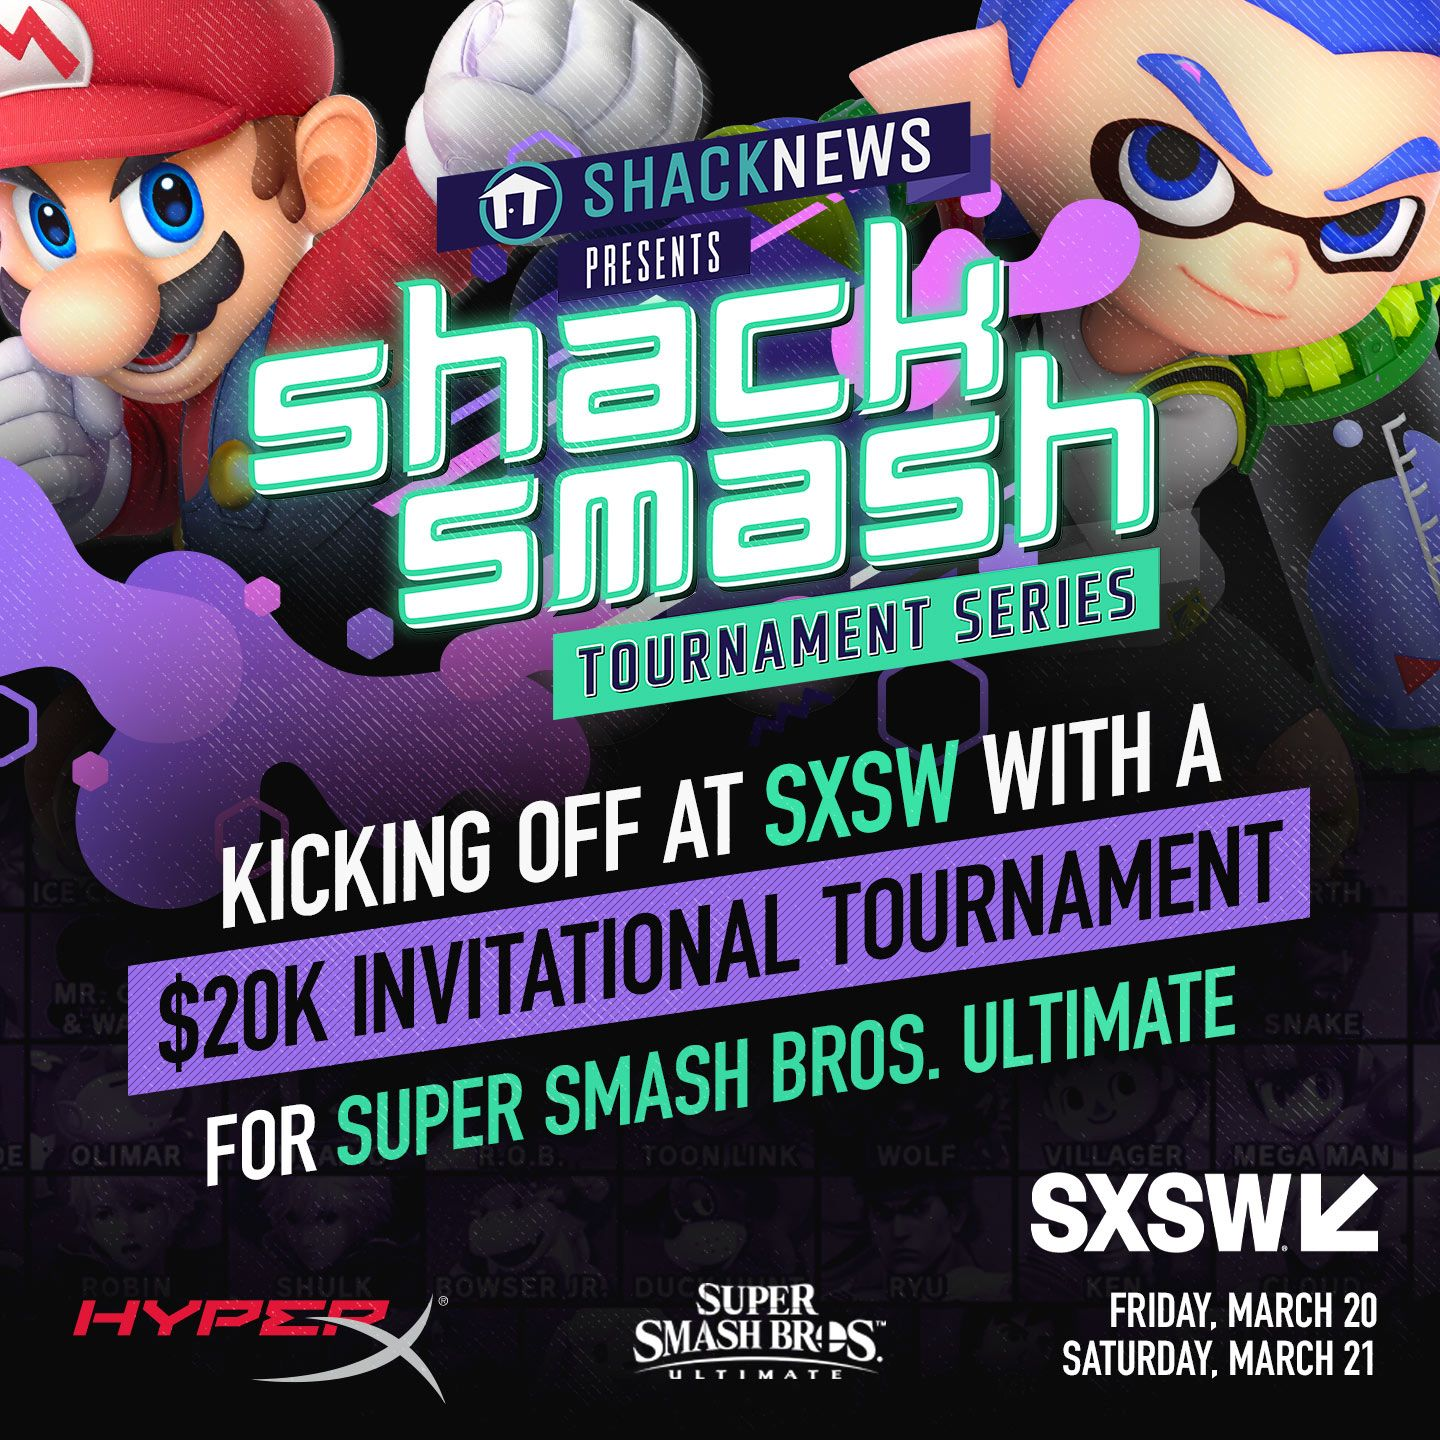 Shack Smash SXSW 2020 will start on March 20 at the Palmer Center in Austin, Texas.